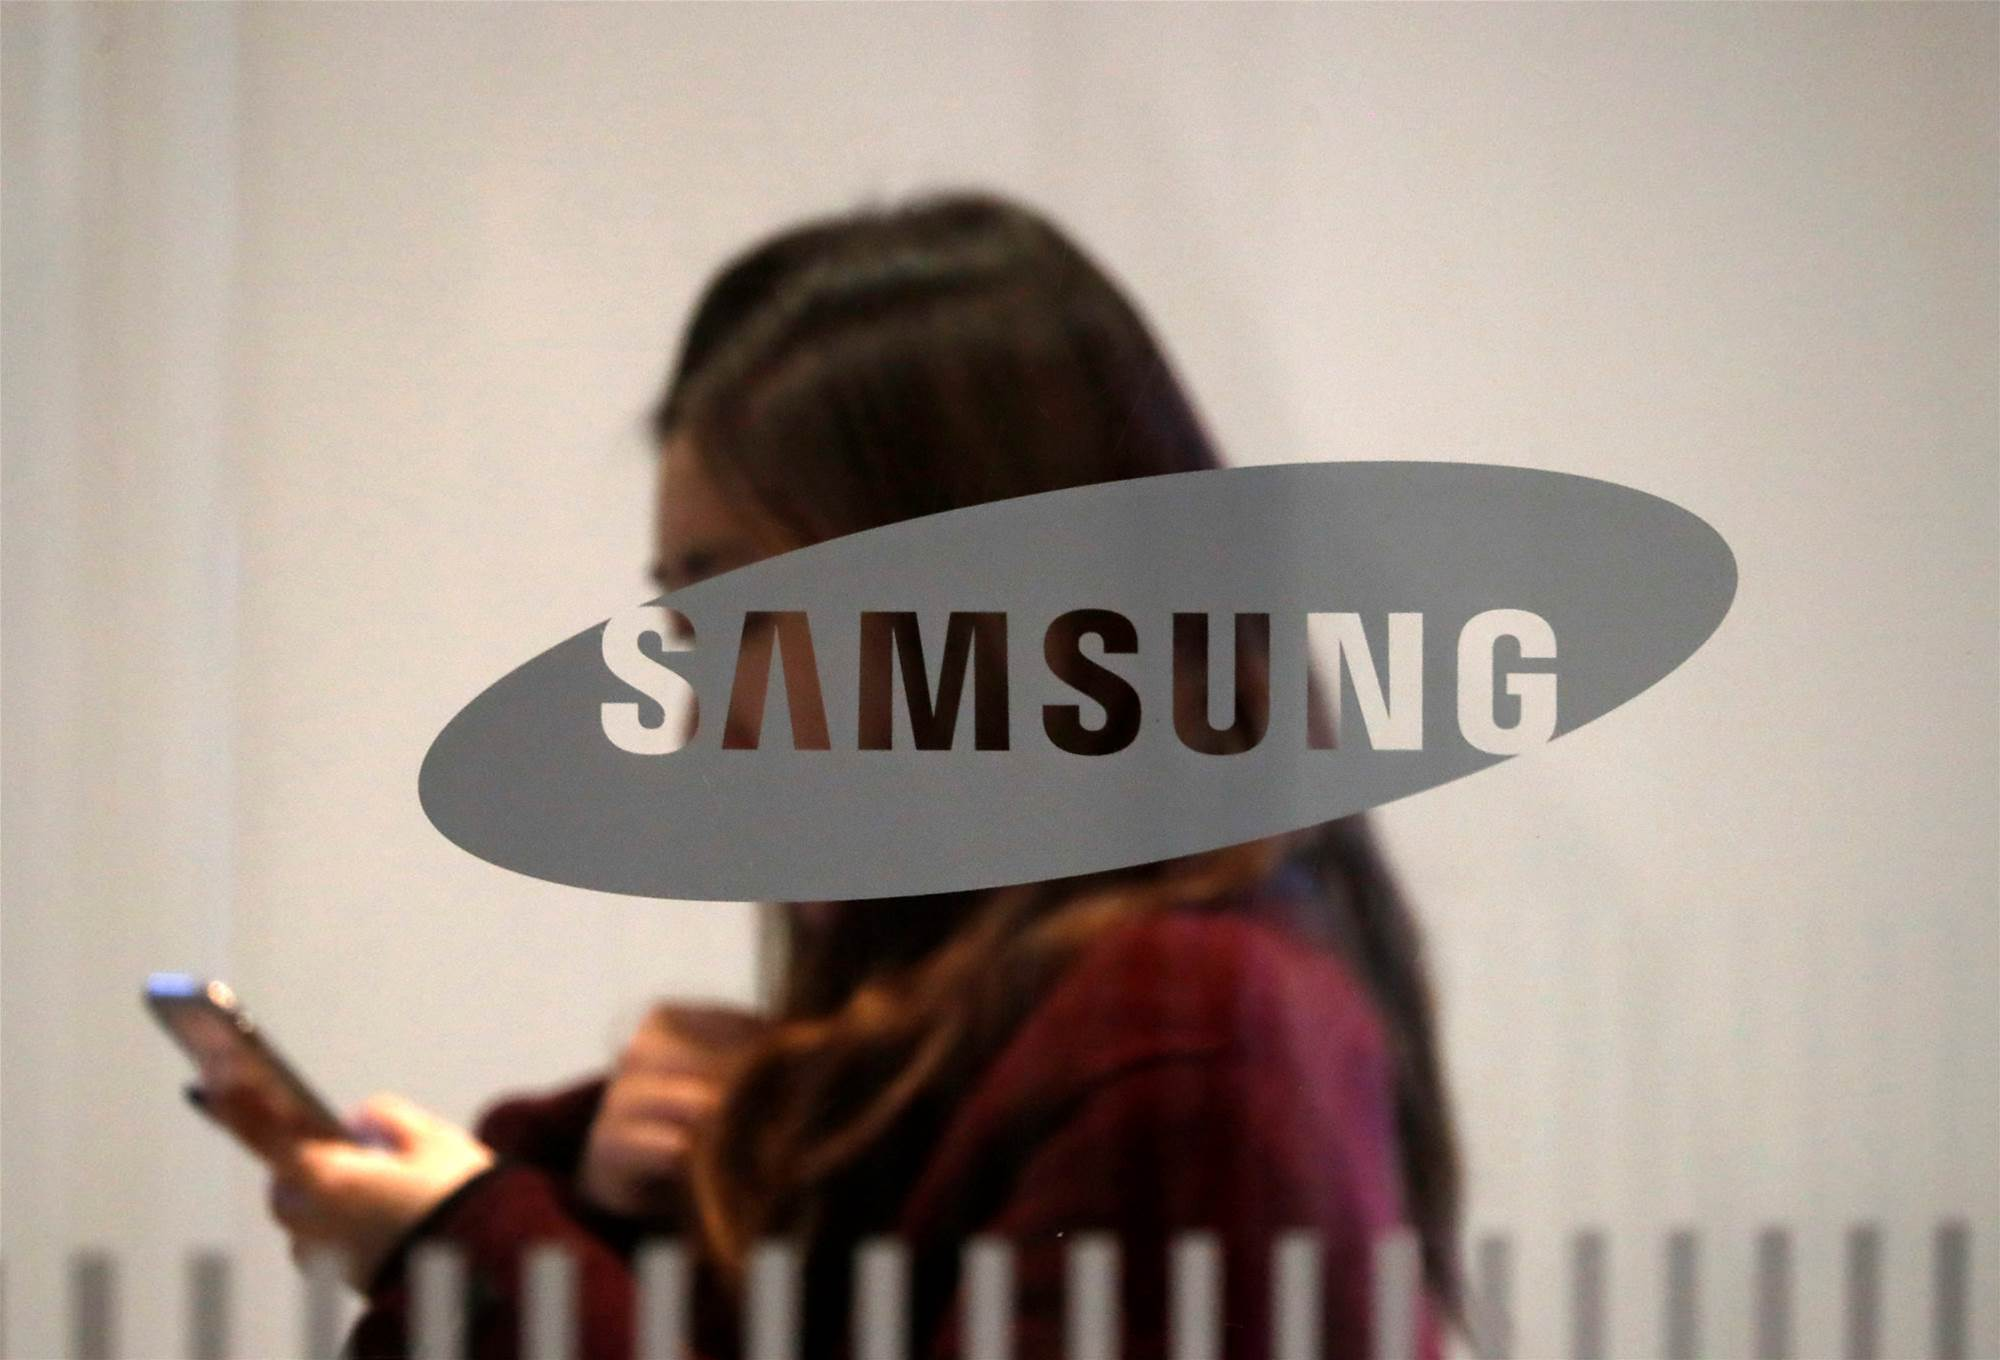 Samsung forecasts weaker earnings as chip sales slow